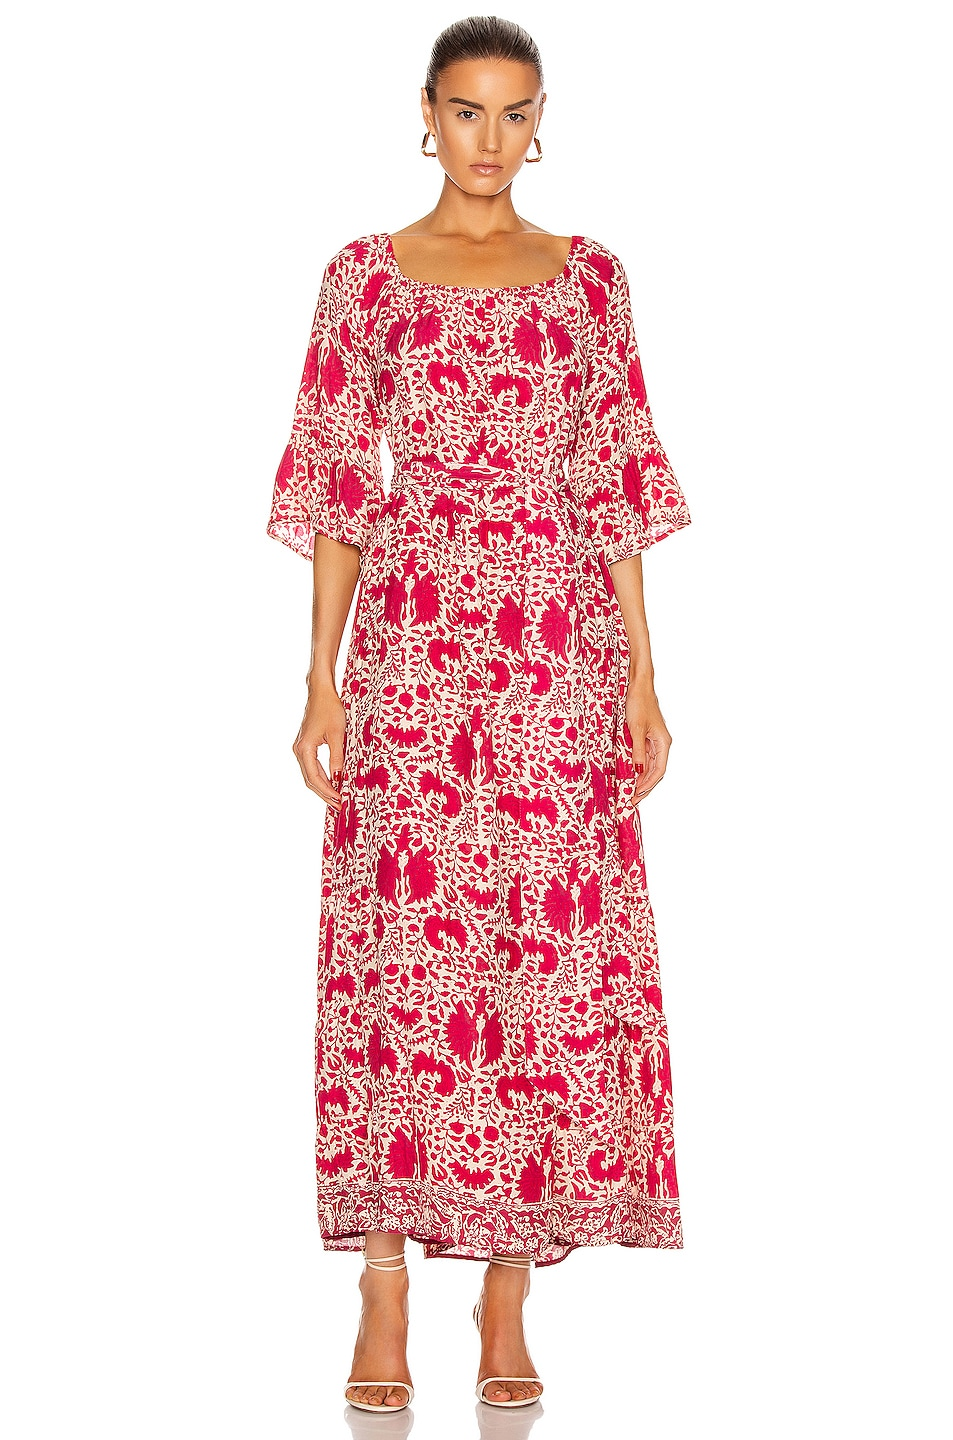 Image 1 of Natalie Martin Mesa Maxi Dress in Wing Print Bougainvillea Pink